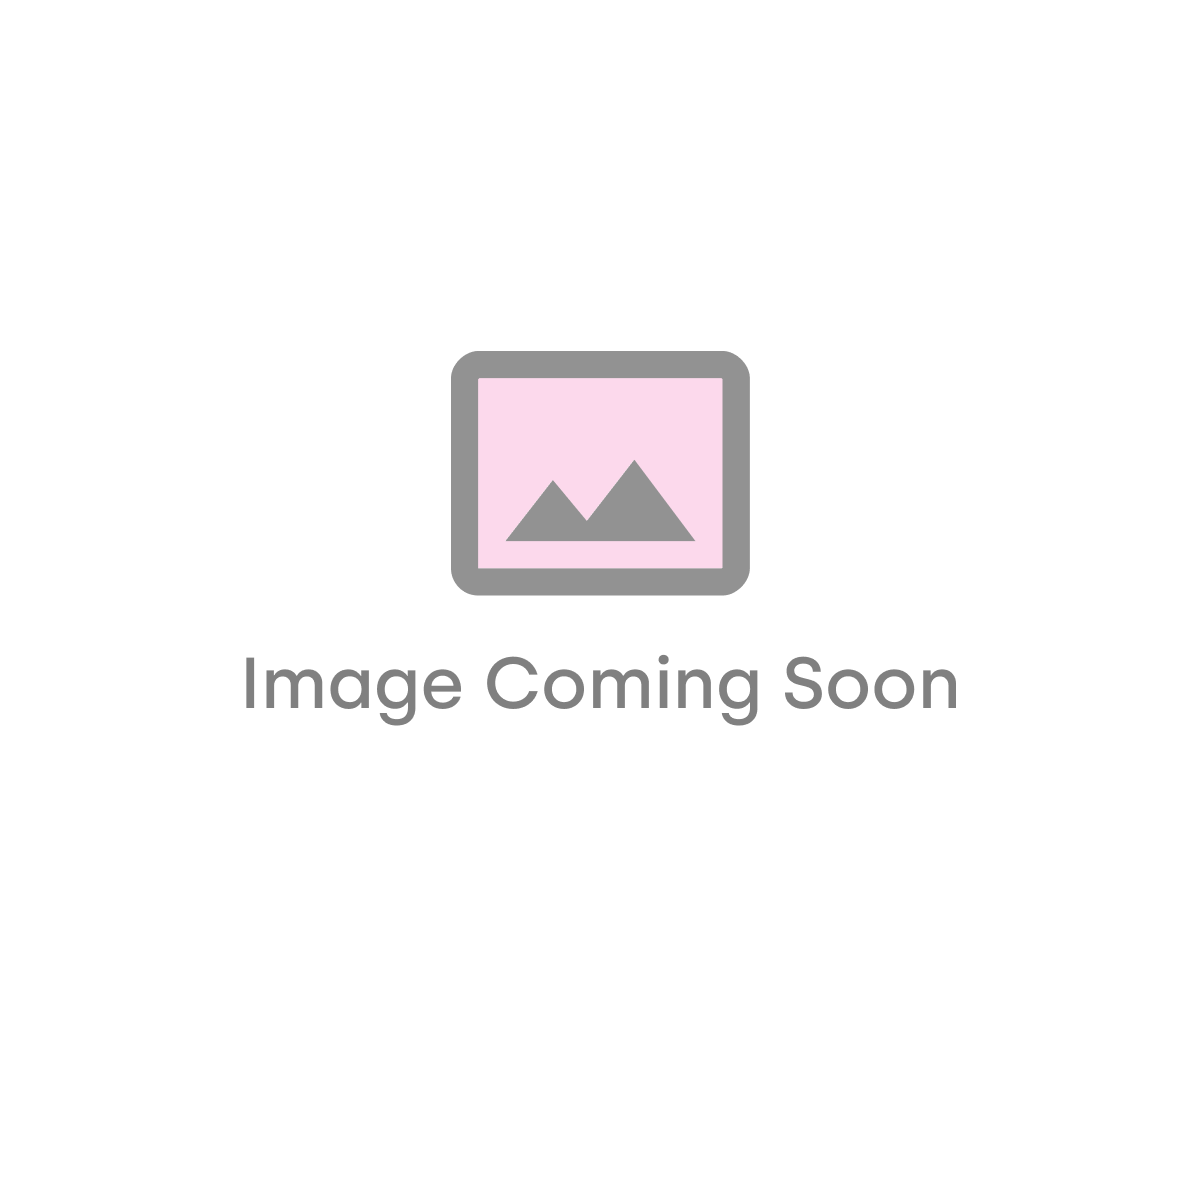 Minuto 400mm Wall Mounted Cloakroom Vanity Unit & Basin - Gloss Grey Mist (19253)